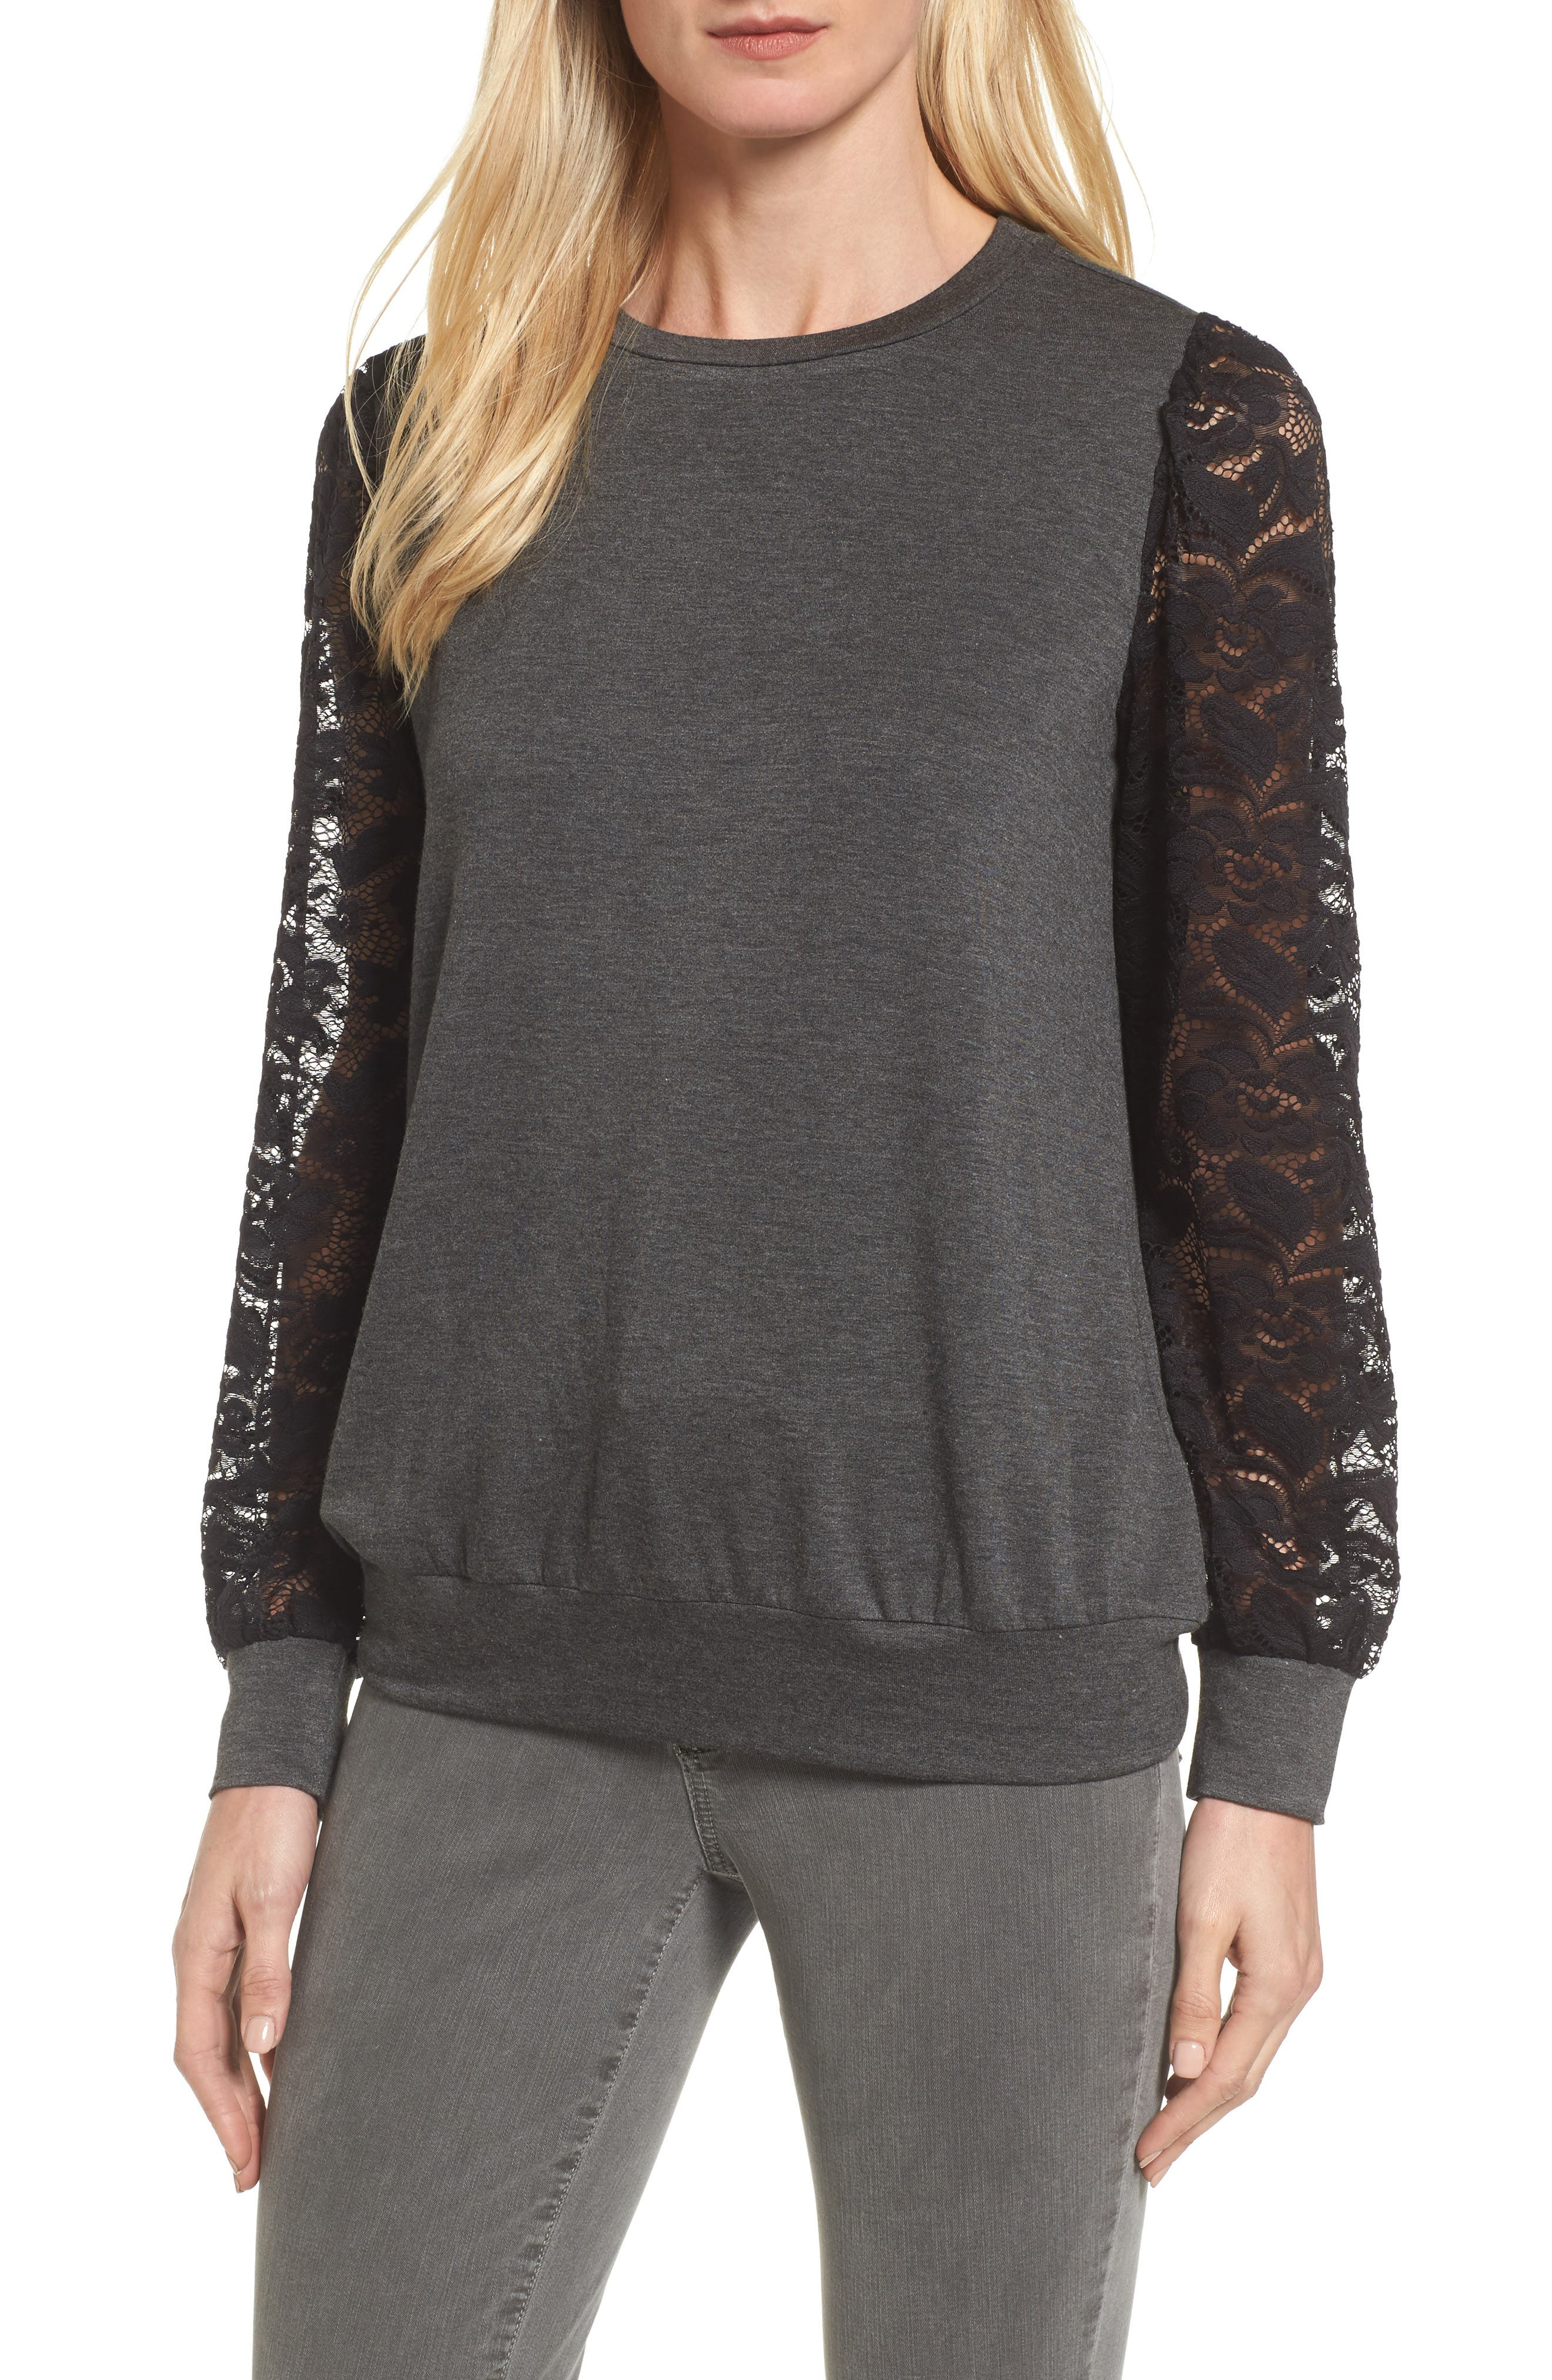 Lace Sleeve Sweatshirt,                         Main,                         color, Dark Charcoal